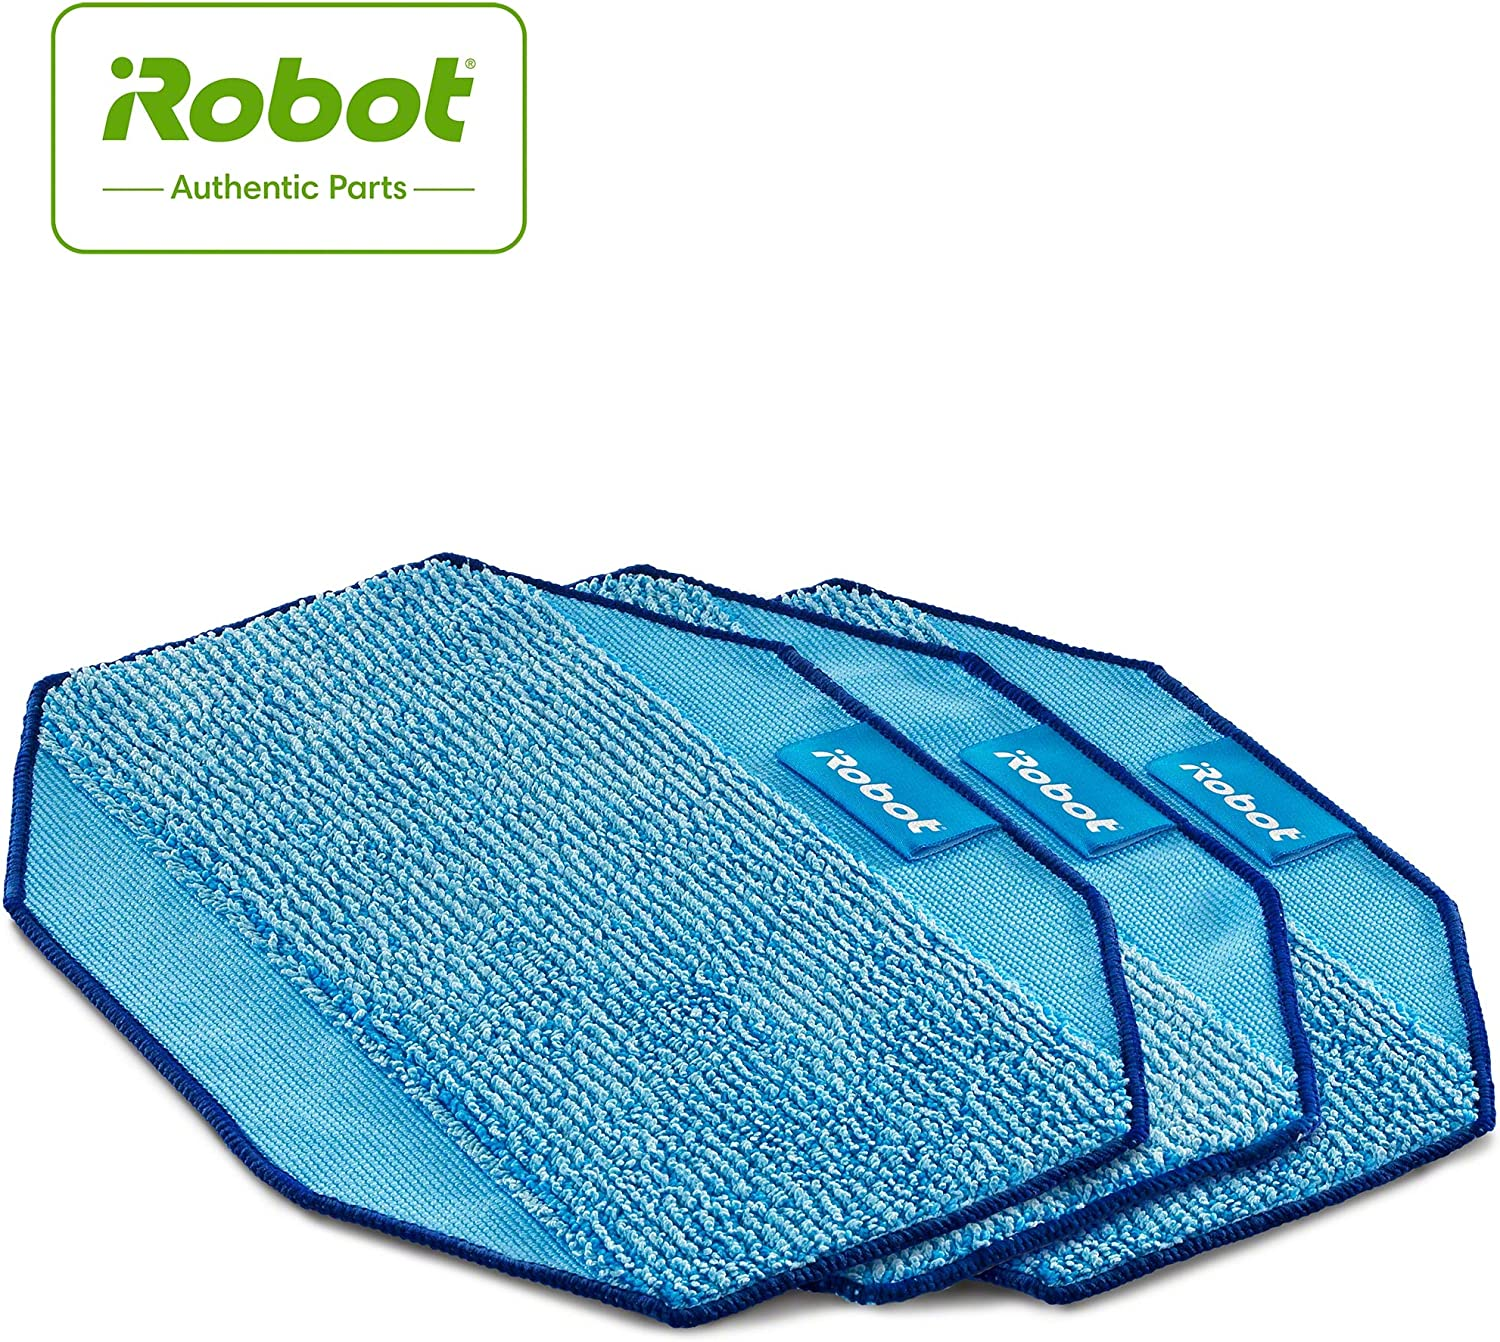 iRobot Authentic Replacement Parts- Braava 300 SeriesMicrofiber, Mopping Cloths Accessories (3-Pack)